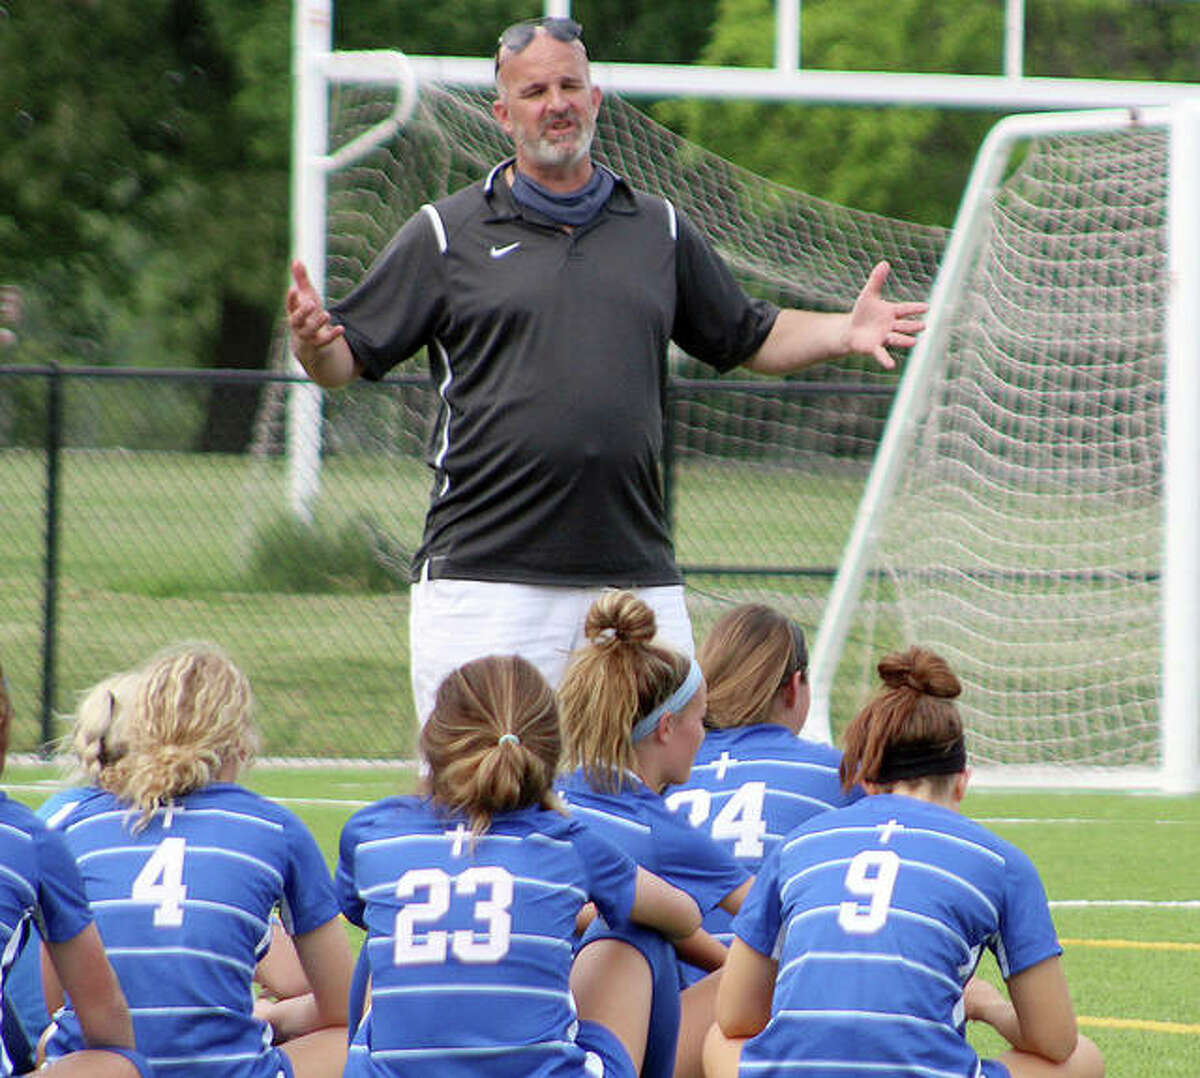 Marquette coach Brian Hoener talks to his team during halftime of a game earlier this season at Gordon Moore Park. The top-seeded Explorers and No. 2 seed Roxana could meet again in a Class 1A Regional.